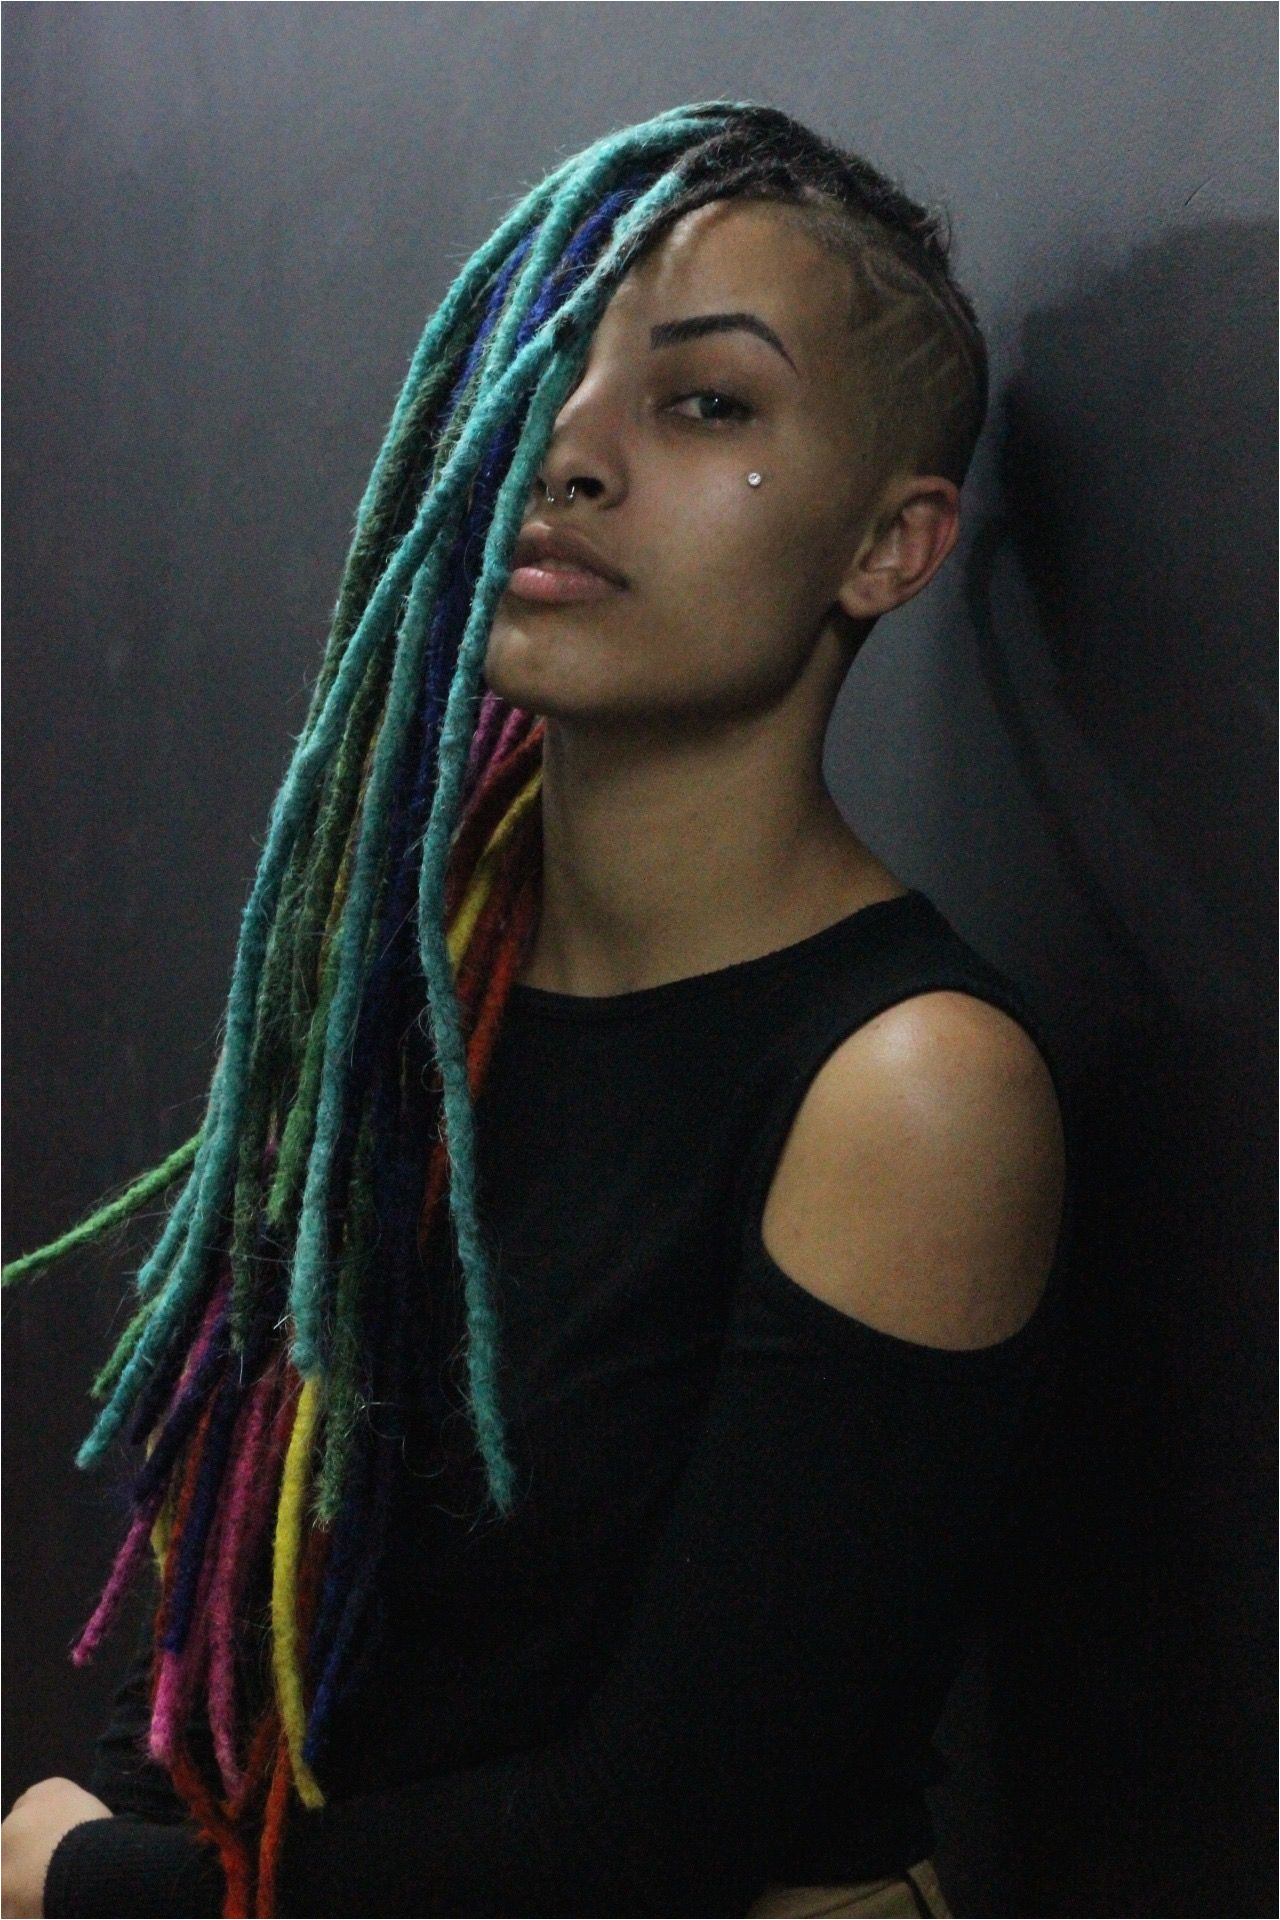 Dreadlocks Hairstyles for Long Faces Mwowhawk Stylish Locks